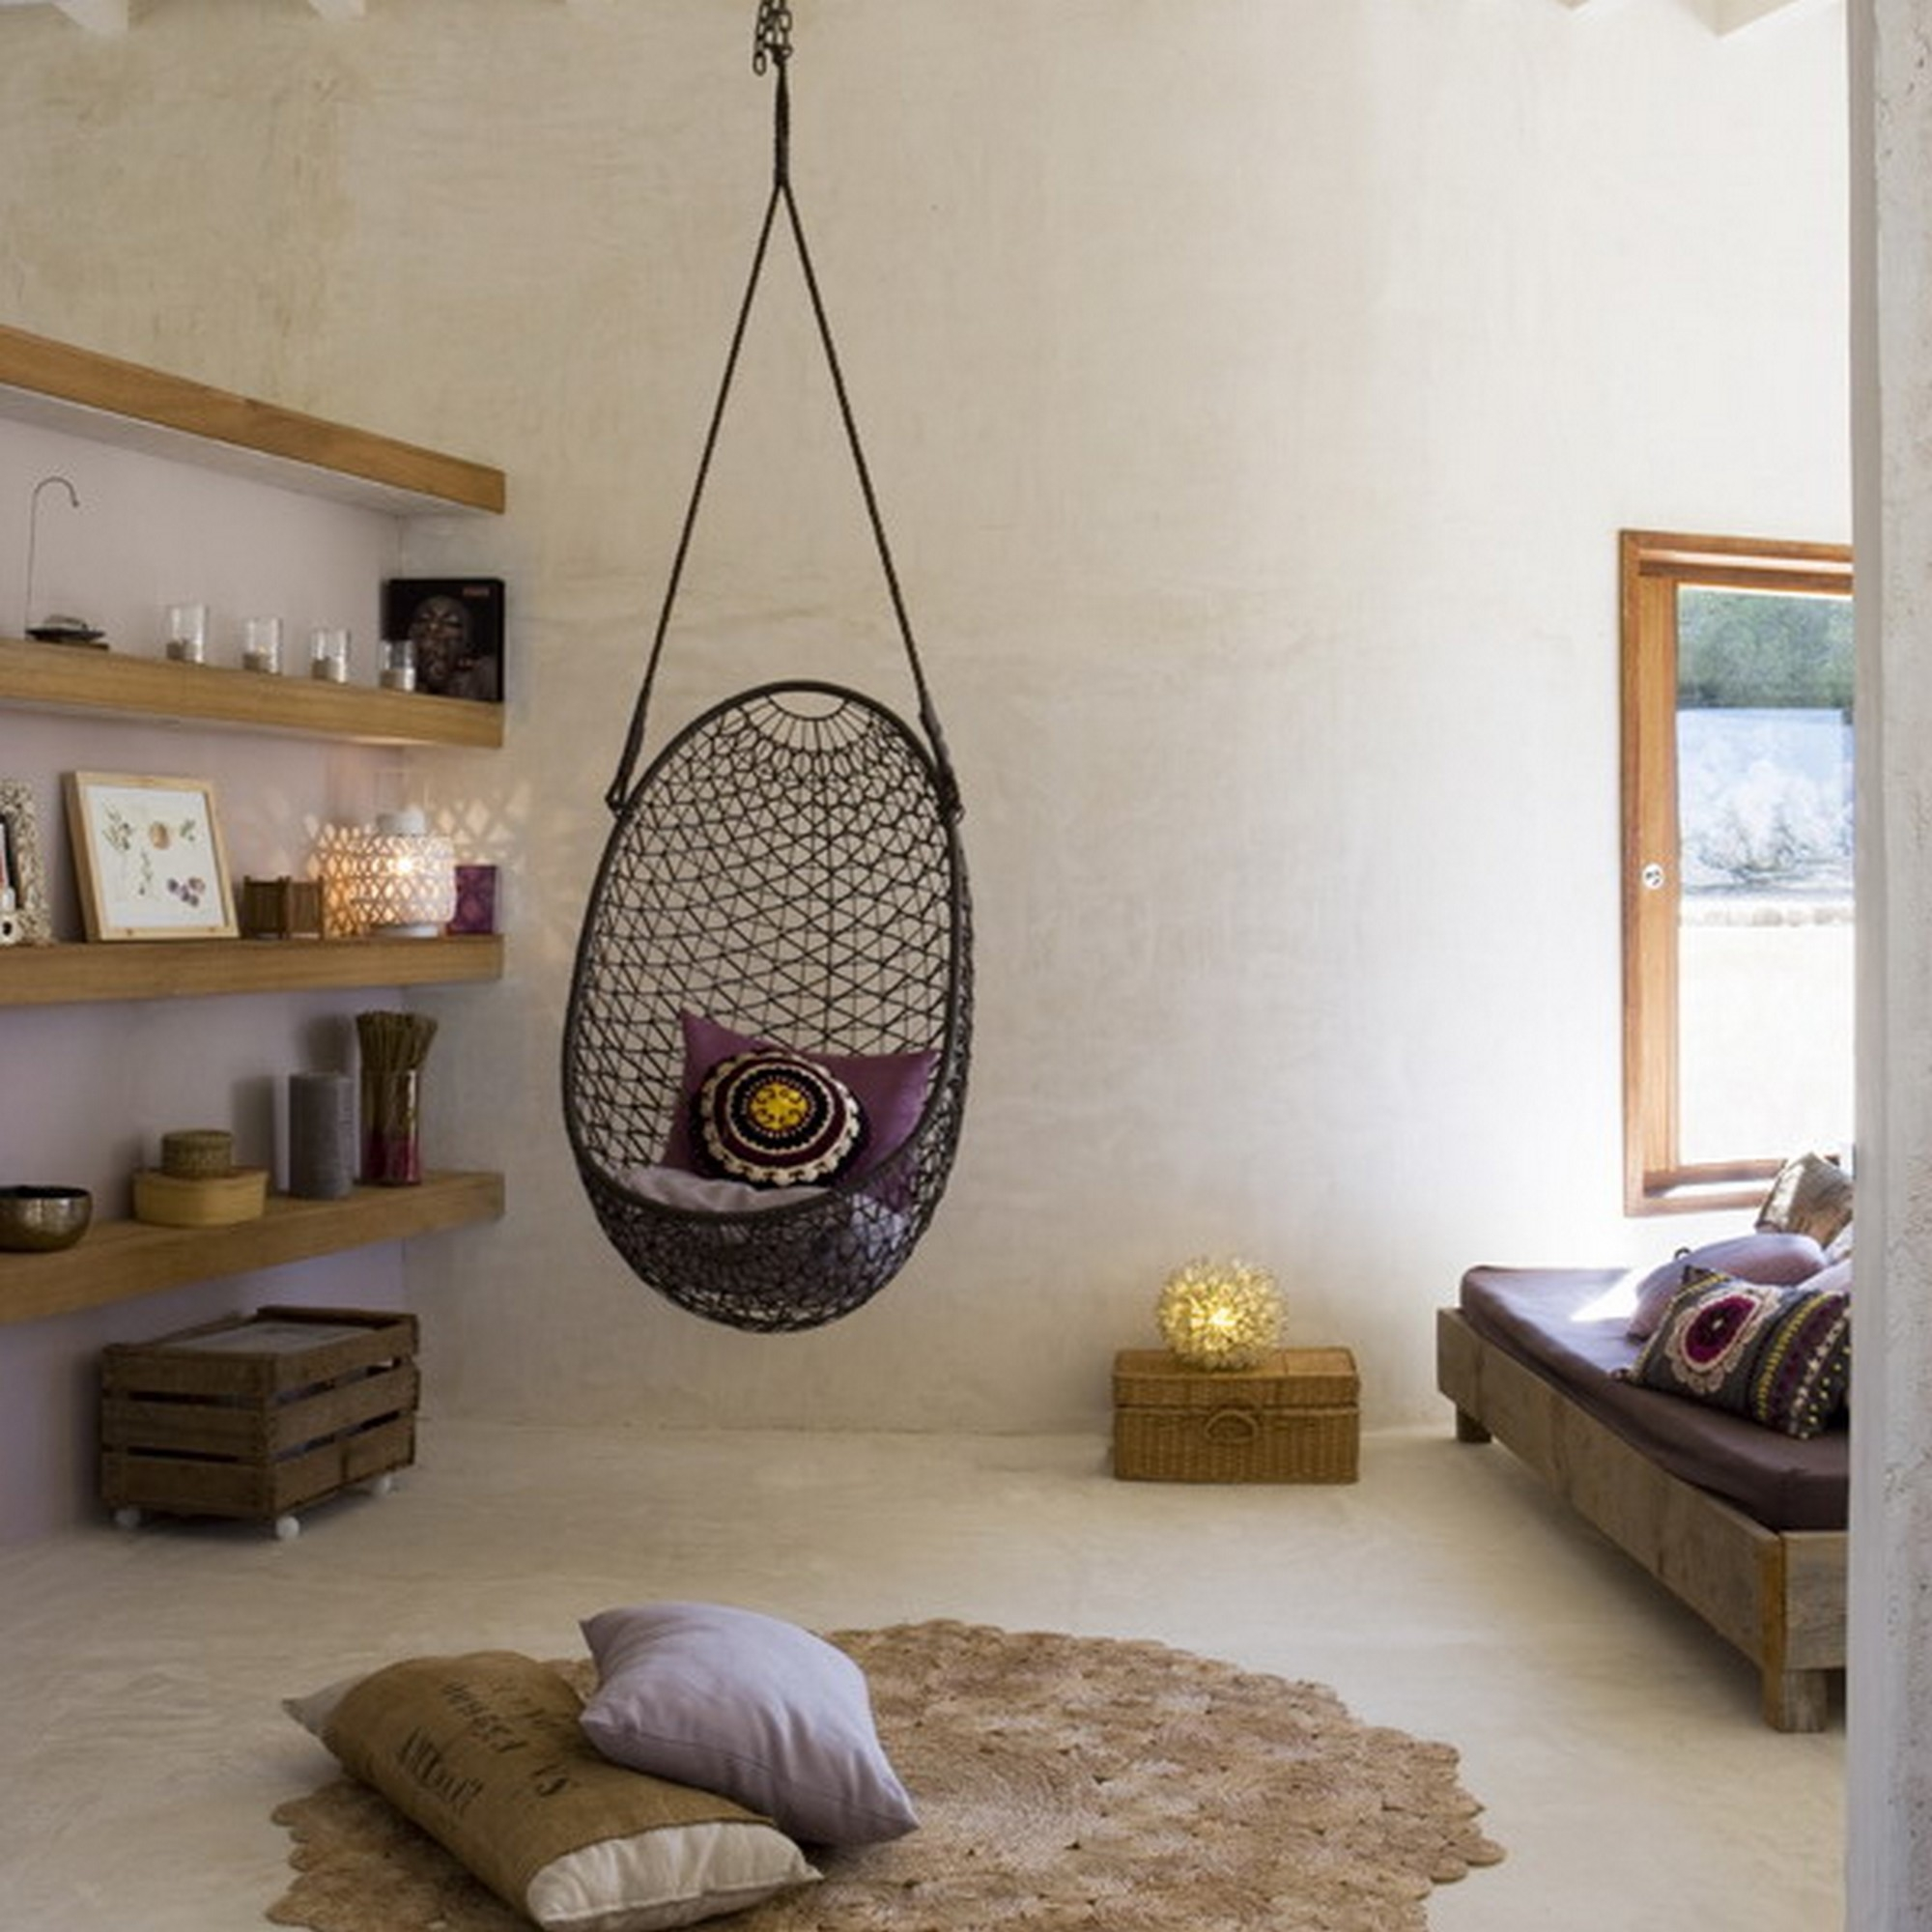 Merveilleux Best Ideas About Indoor Hanging Chairs With Hammock Chair .